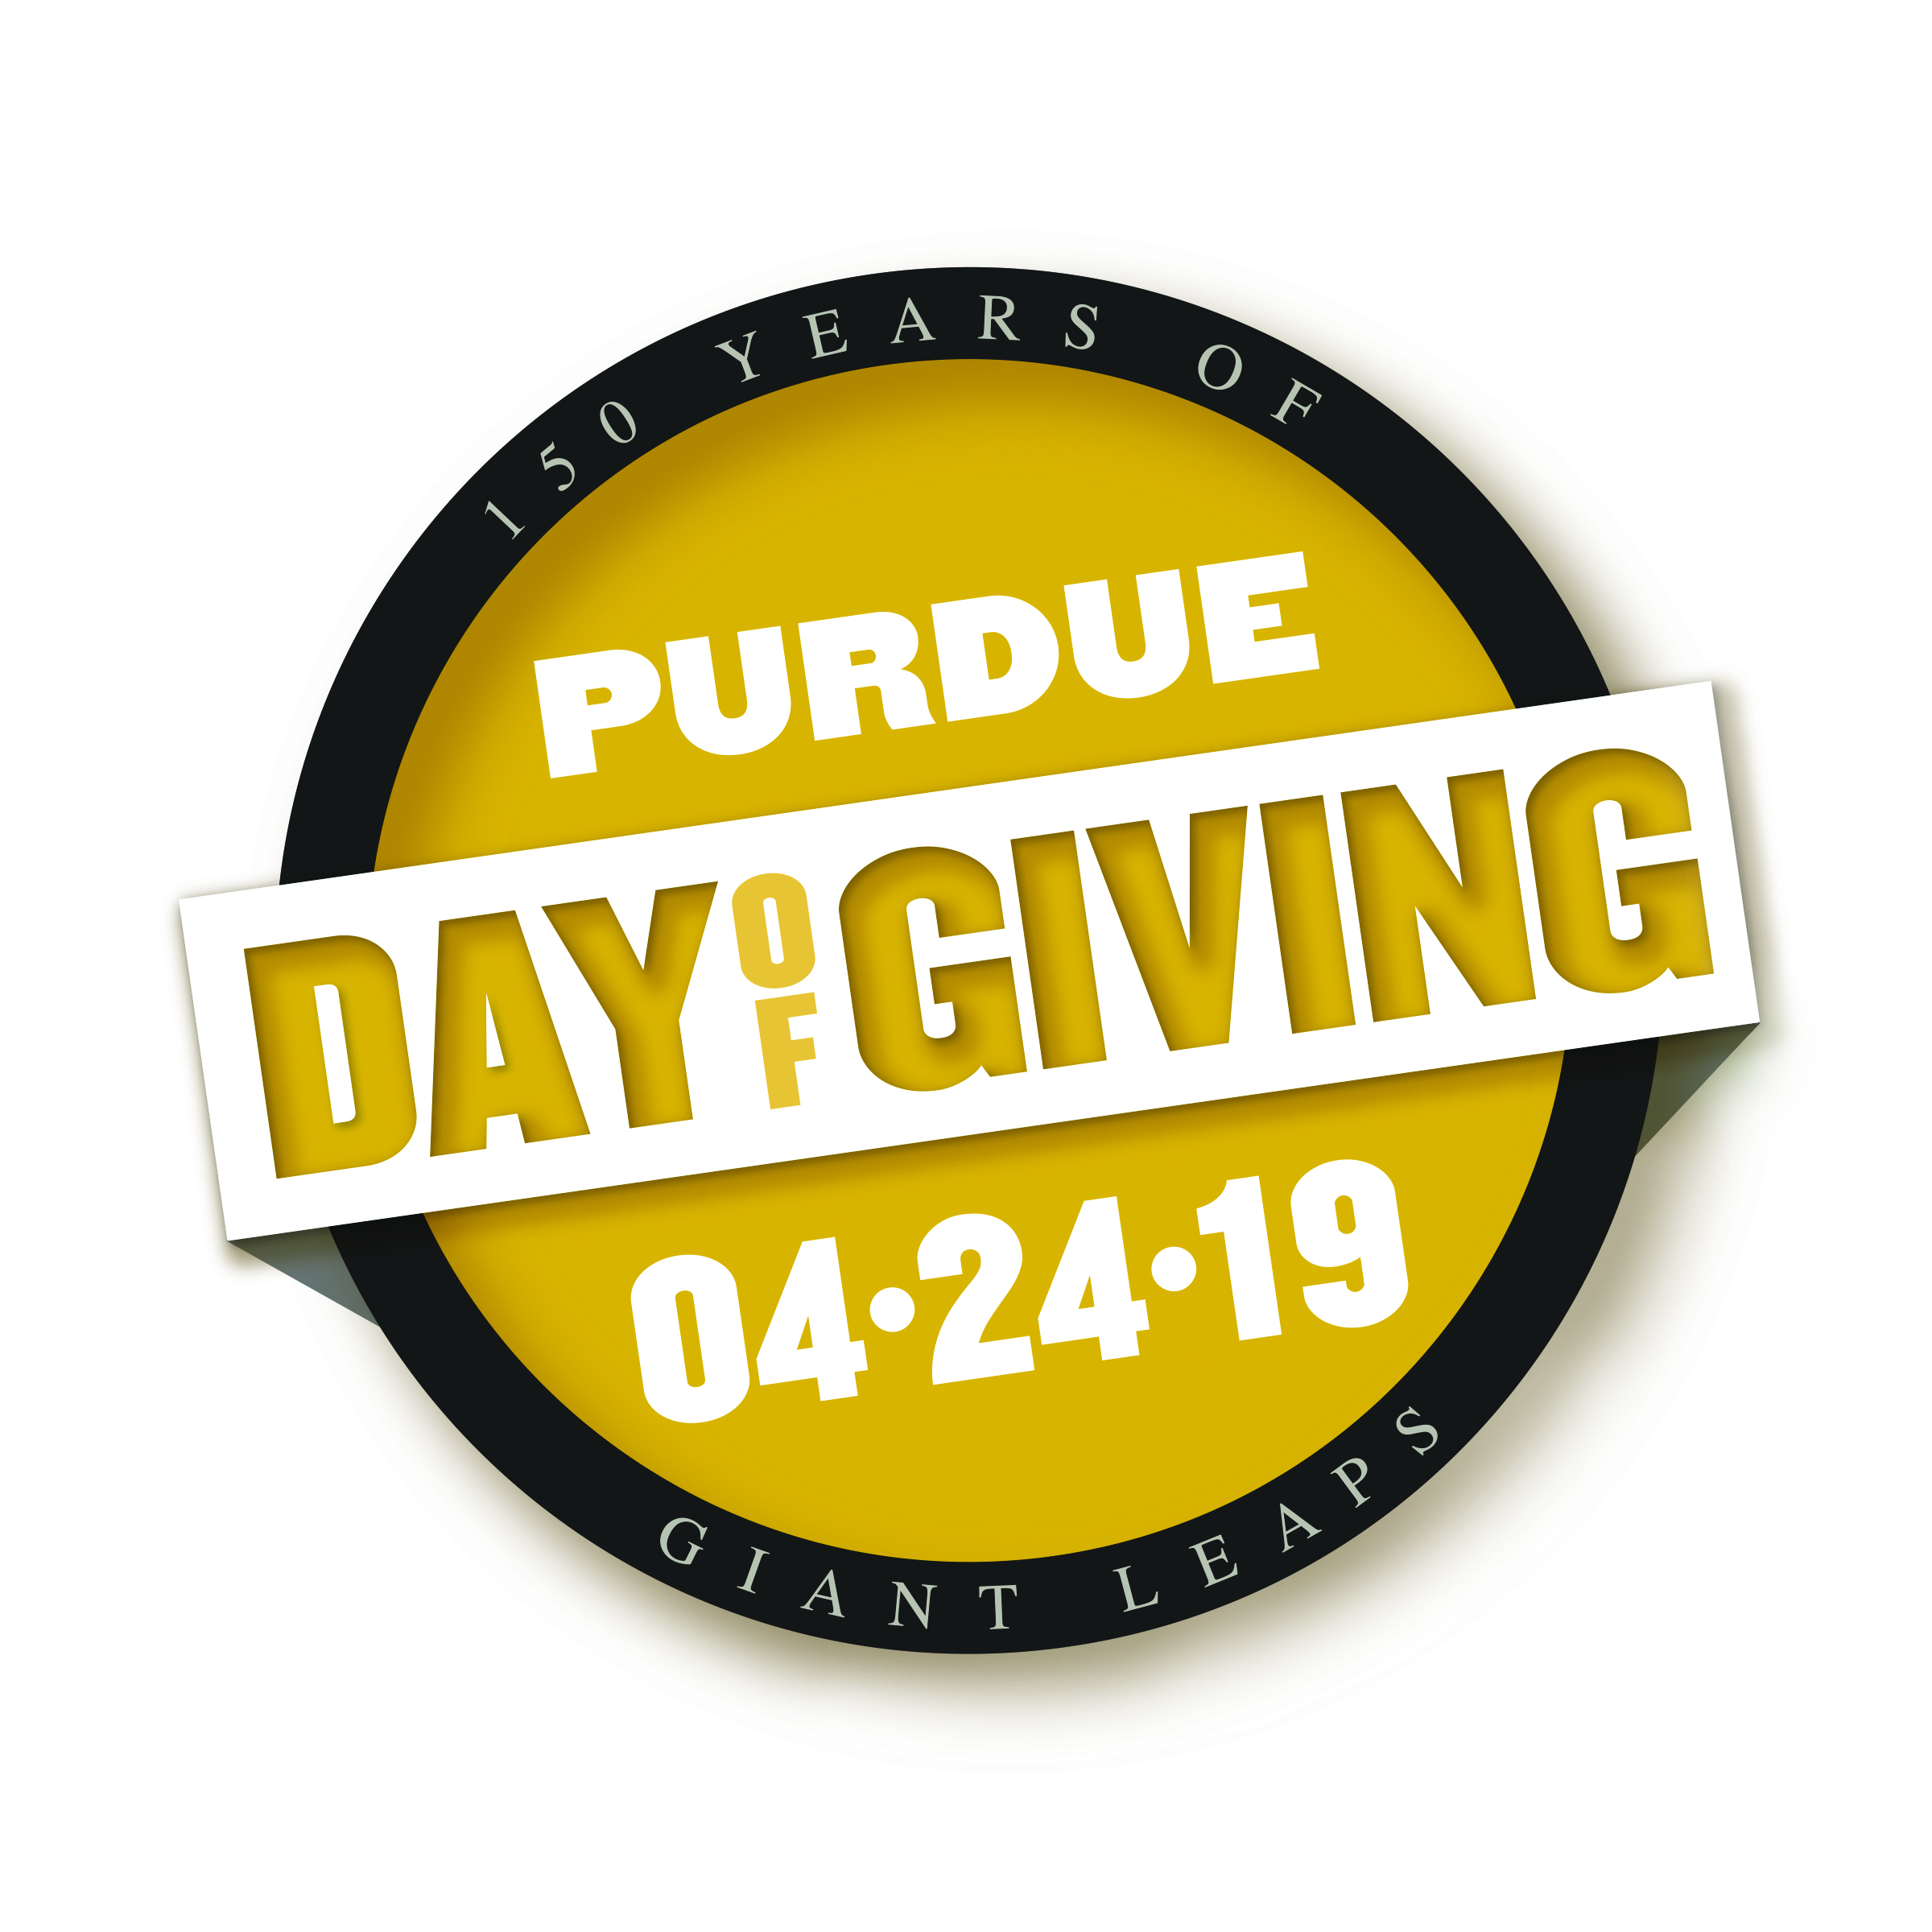 Purdue Calendar 2019 2019 Purdue Day of Giving   Davidson School of Chemical